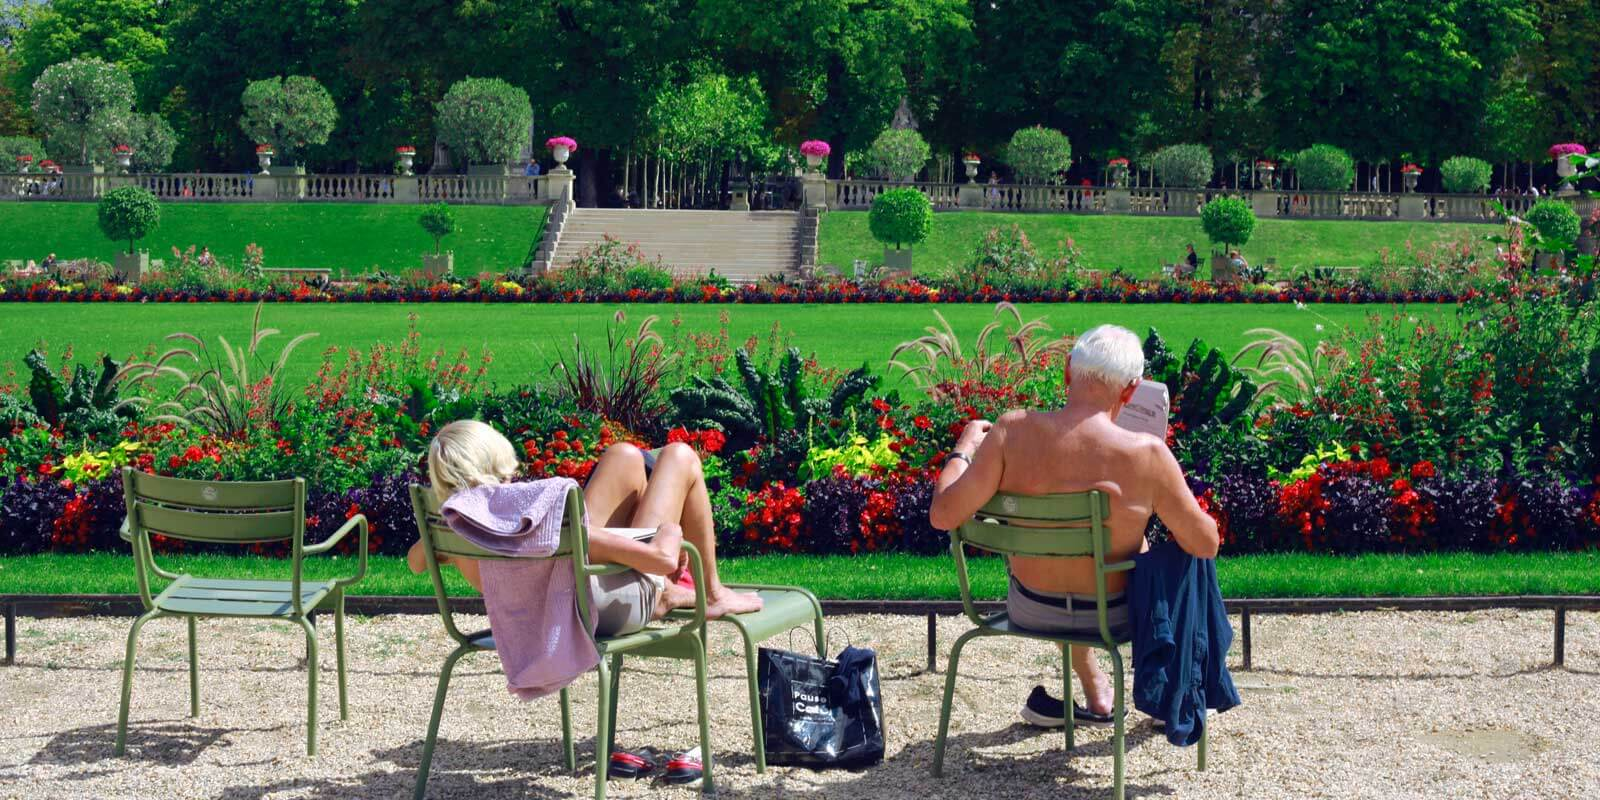 Woman and man enjoying a warm day in Le Jardin du Luxembourg in Paris.